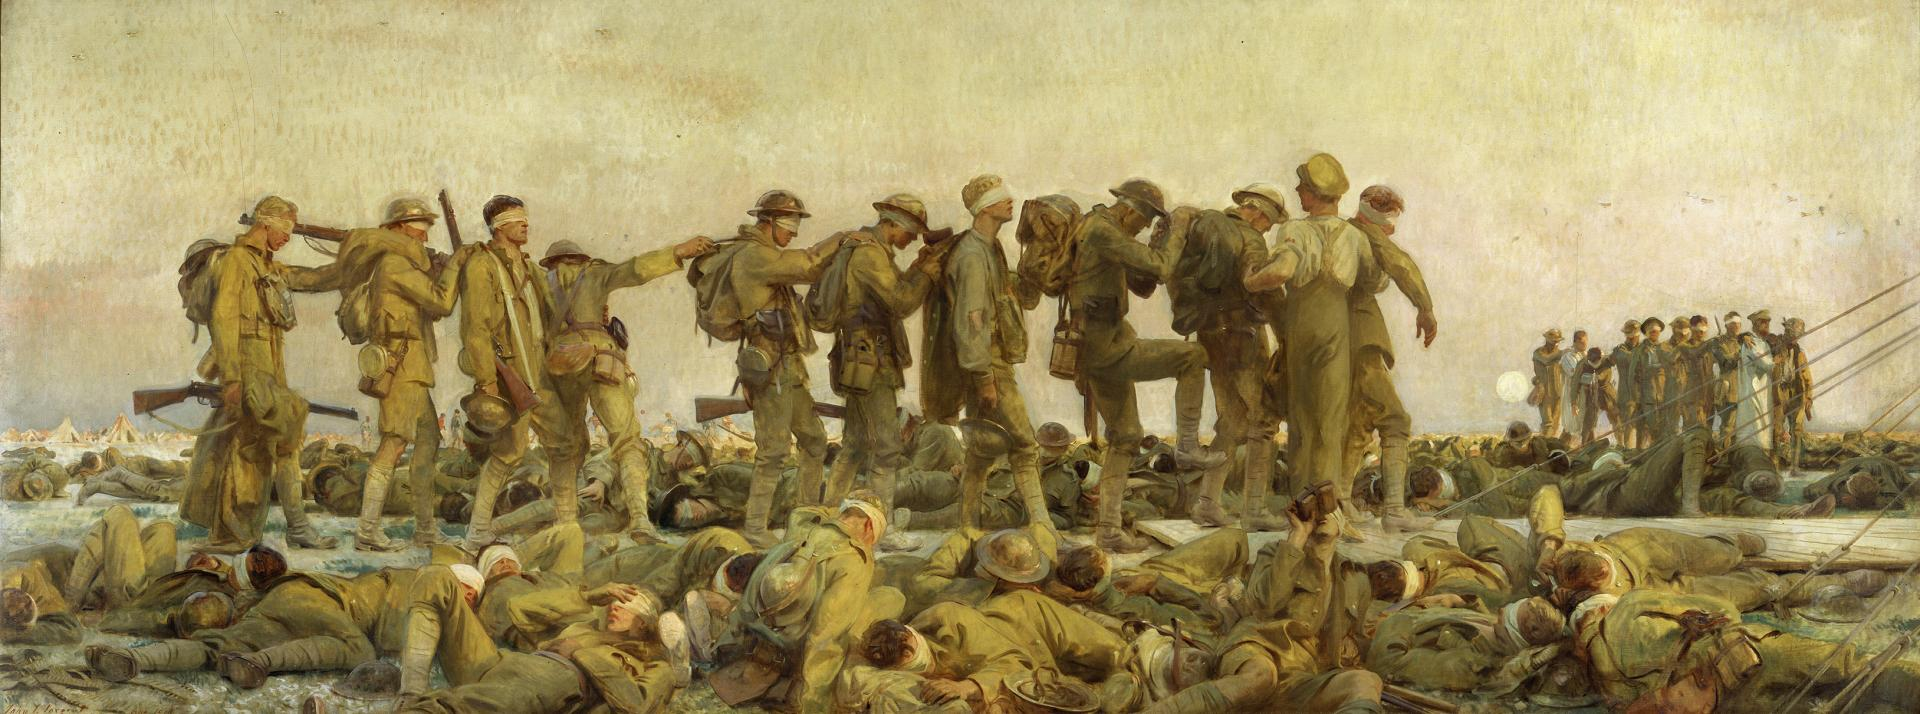 Gassed by John Singer Sargent